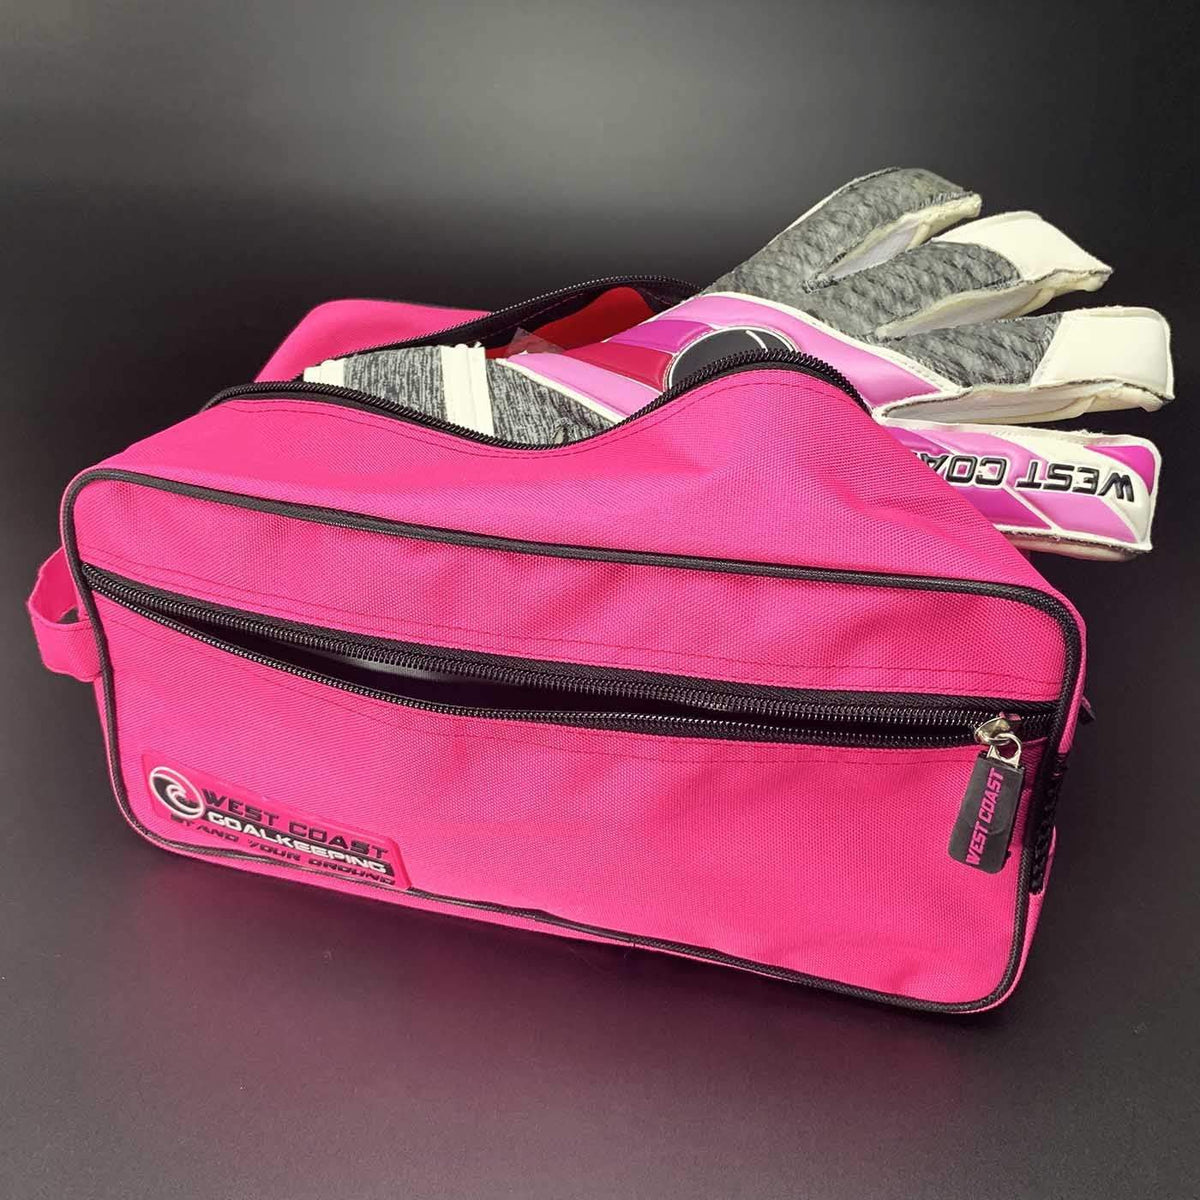 Pro Team Glove Bag - Fingersave Goalkeeper Gloves West Coast Goalkeeping